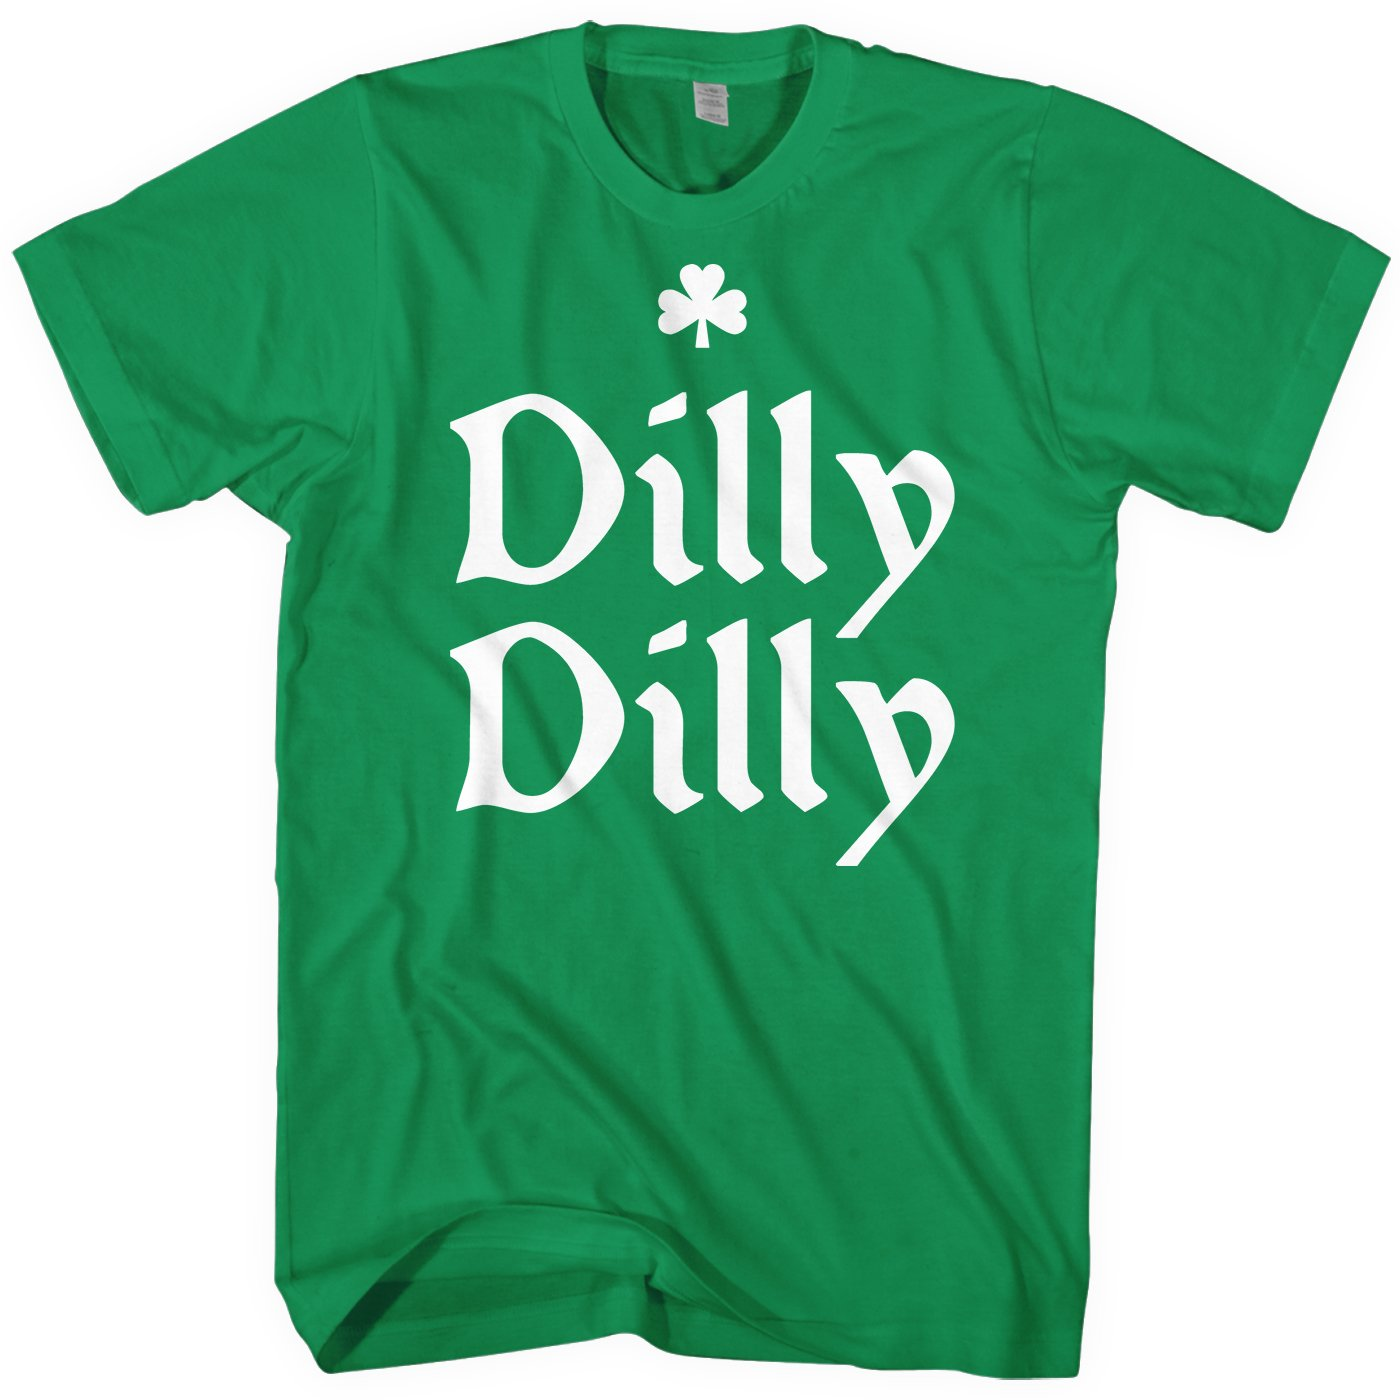 c3a8c35f6dfd4 Mixtbrand Men s Dilly Dilly ST. Patrick s Day   Gold Crown T-Shirt ...